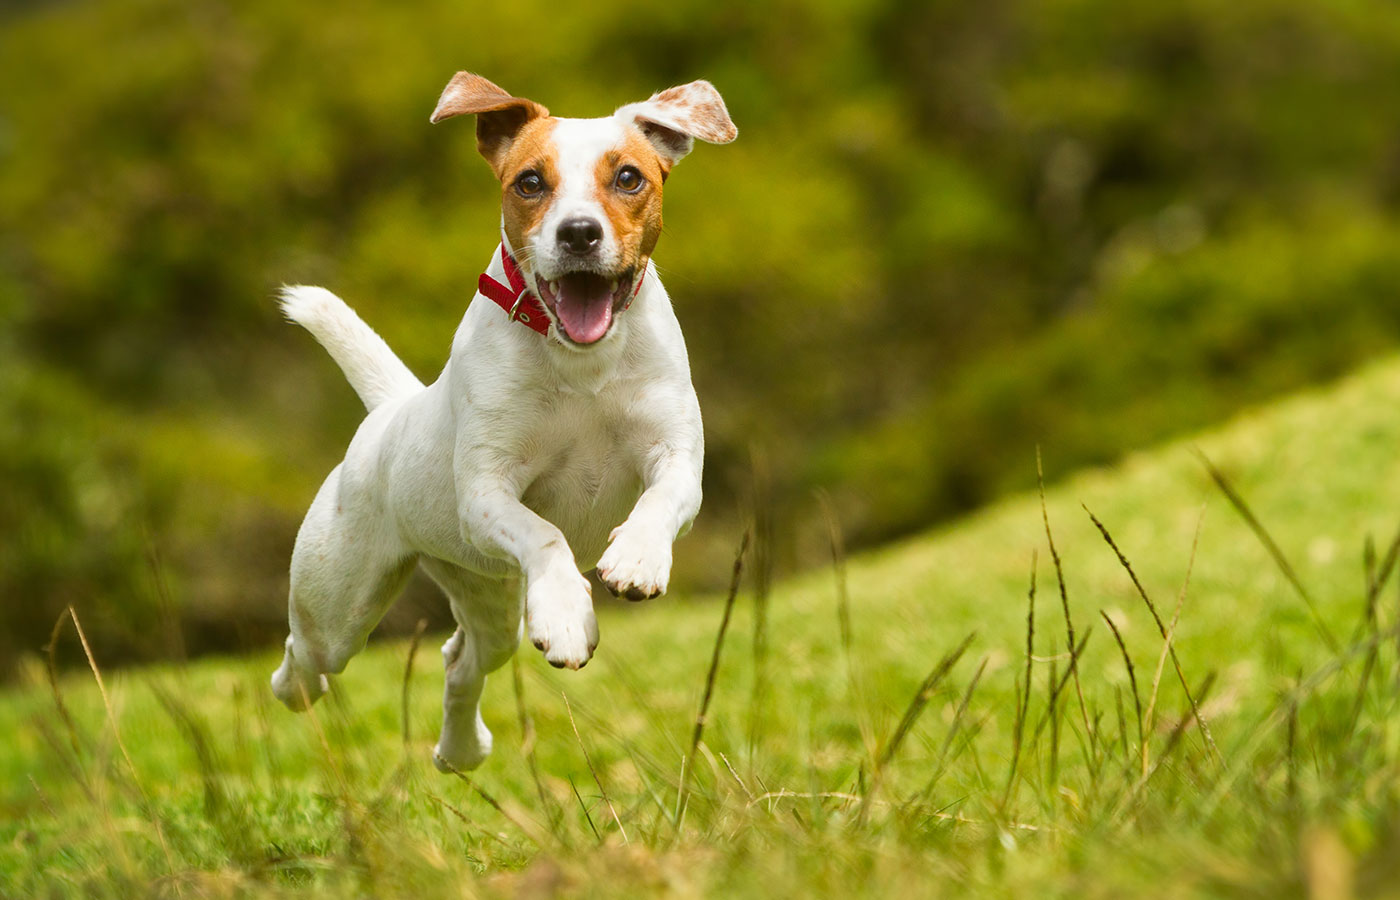 Jack Russel Parson Dog Run Toward The Camera Low Angle High Speed Shot - Image